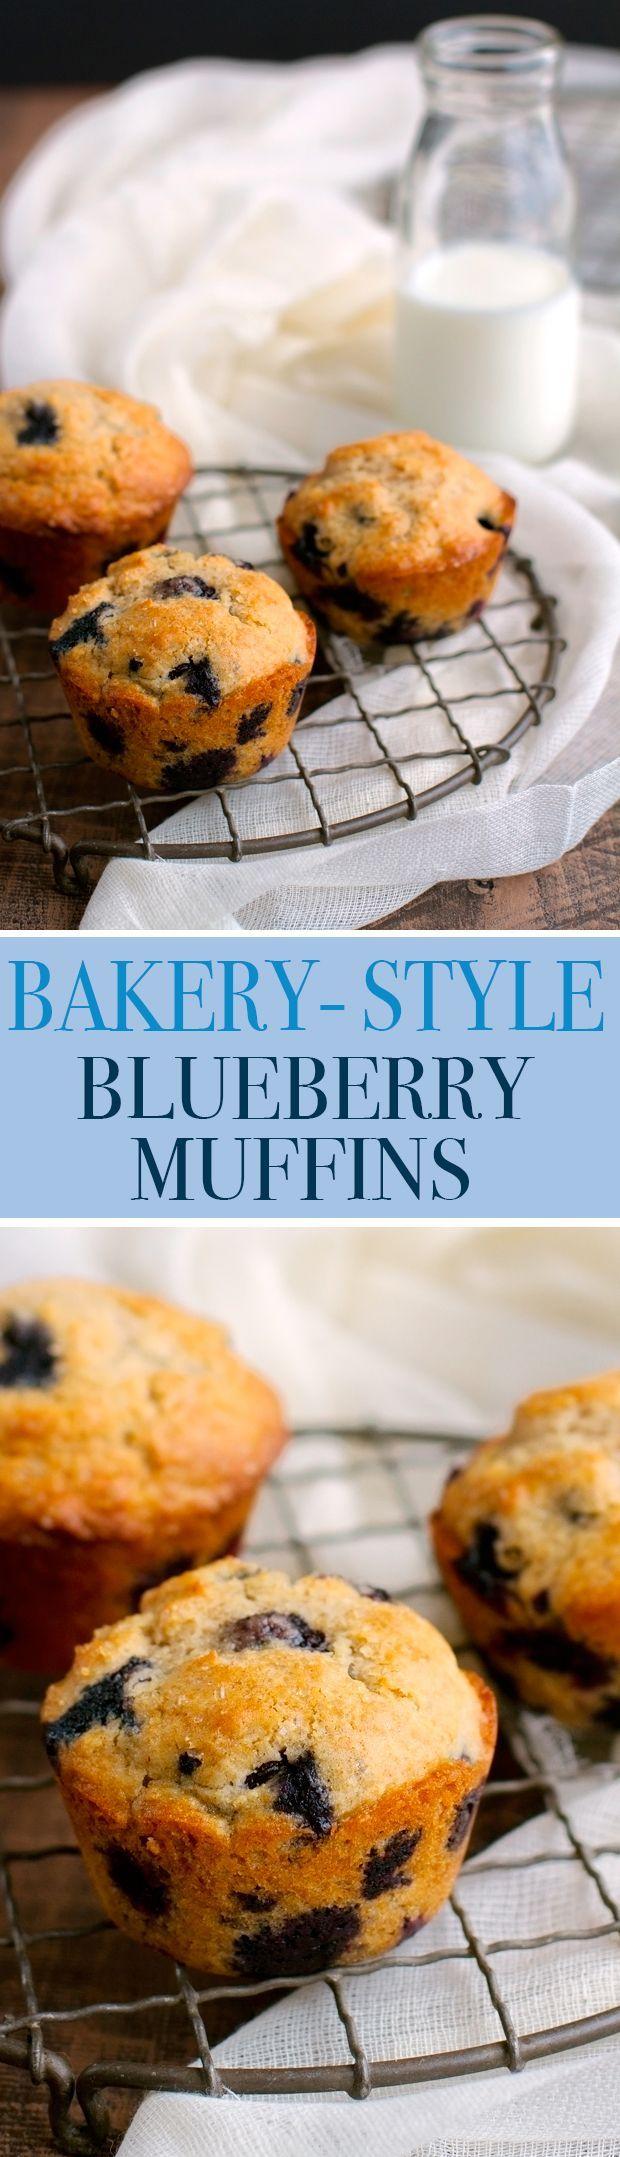 Bakery Style Blueberry Muffins - Ready in 30 minutes and the most ...